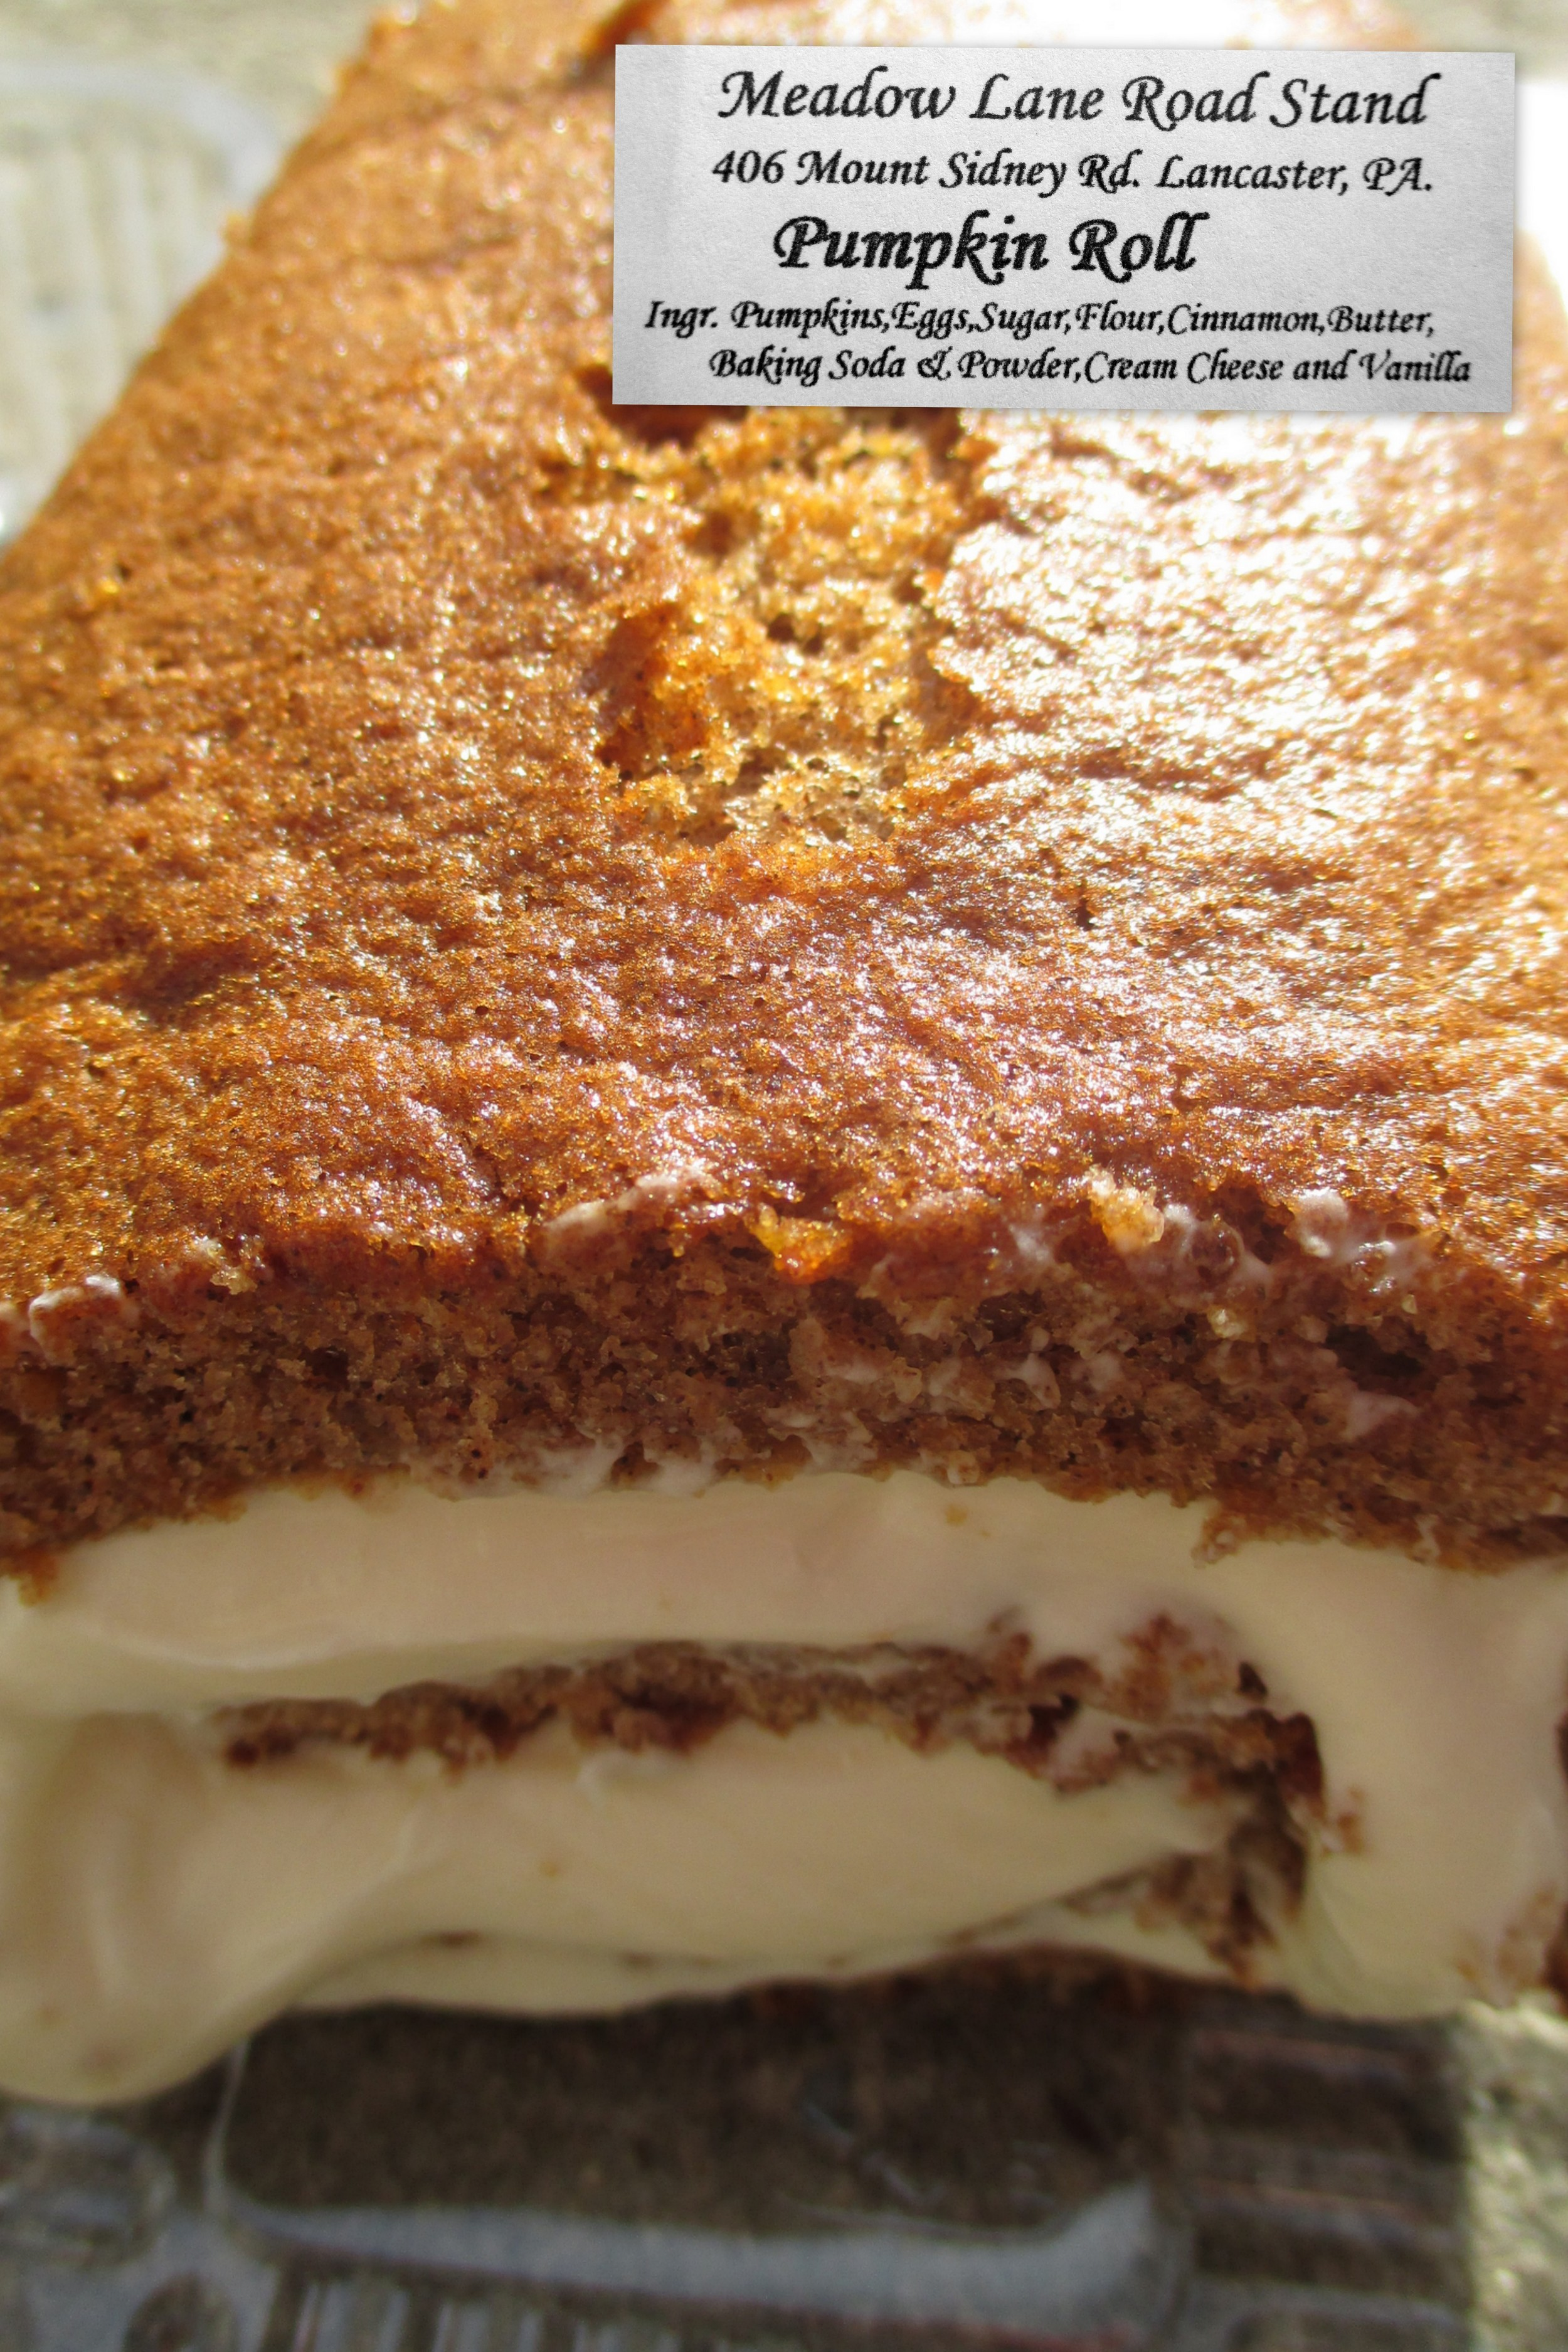 The Meadow Lane Road Stand Pumpkin Roll - many have fought over this famous roll... some have even won and gotten some before it's gone...